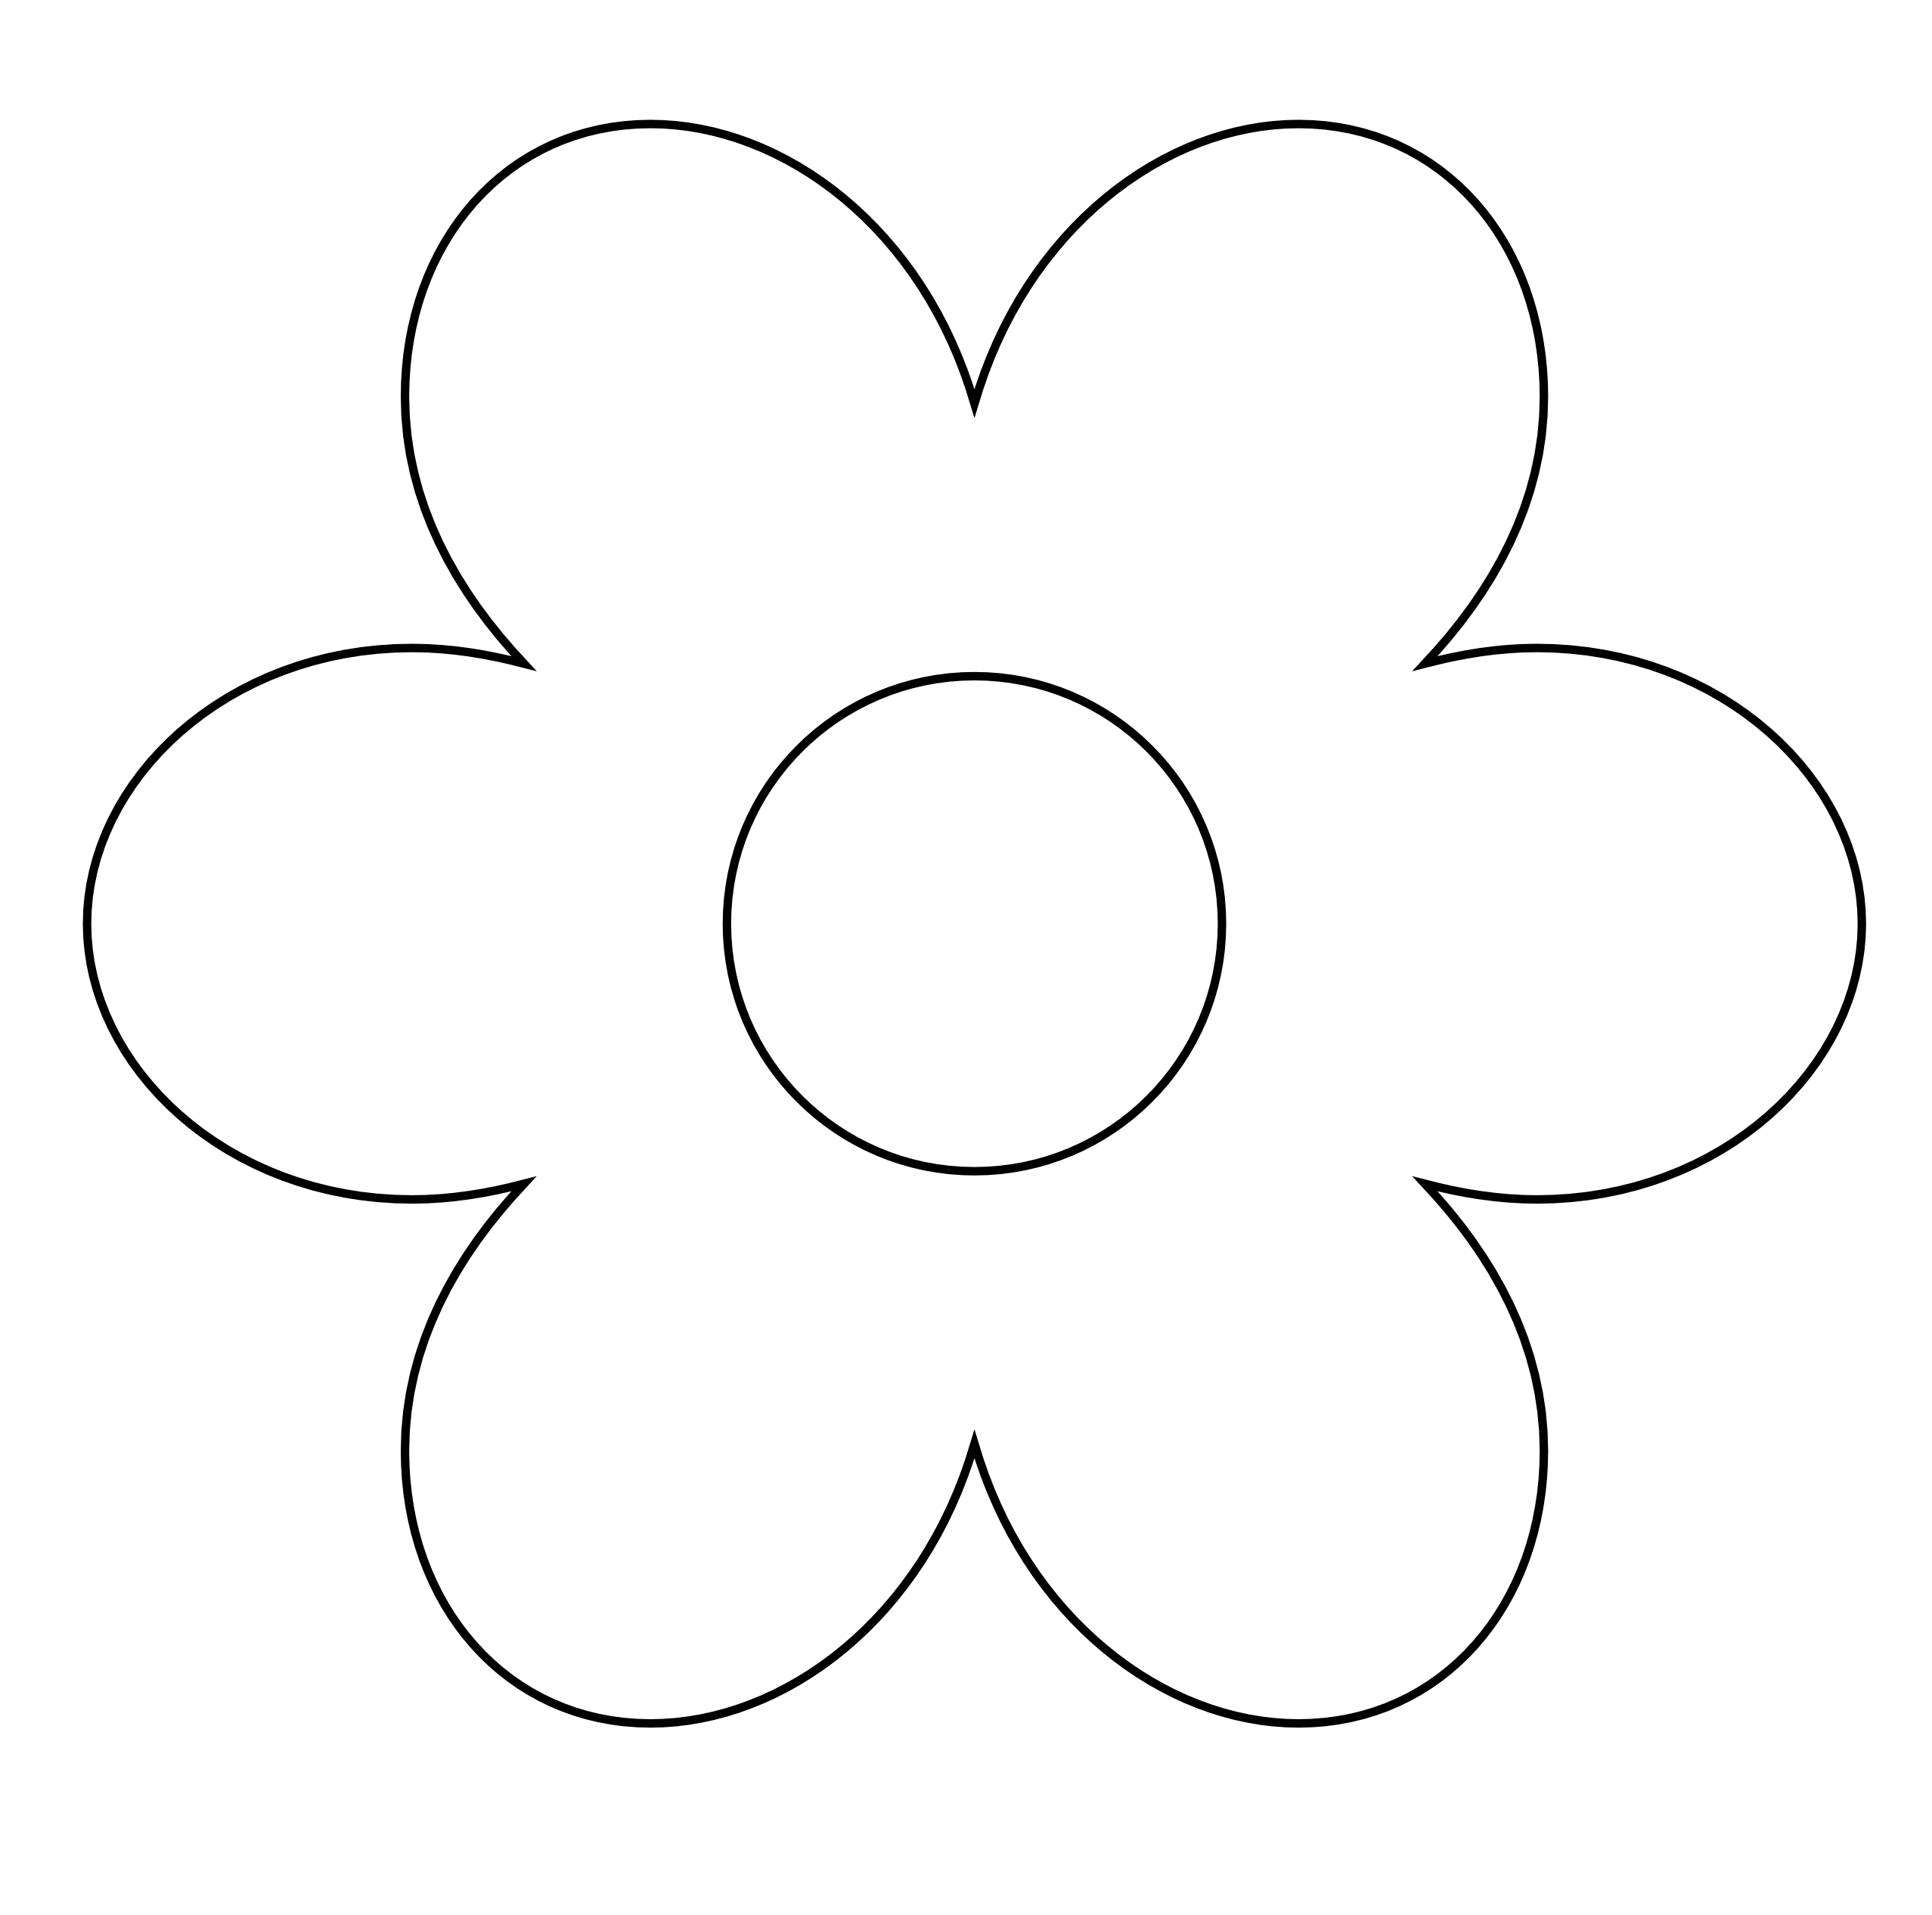 Flower Black And White Transparent PNG Pictures - Free ...